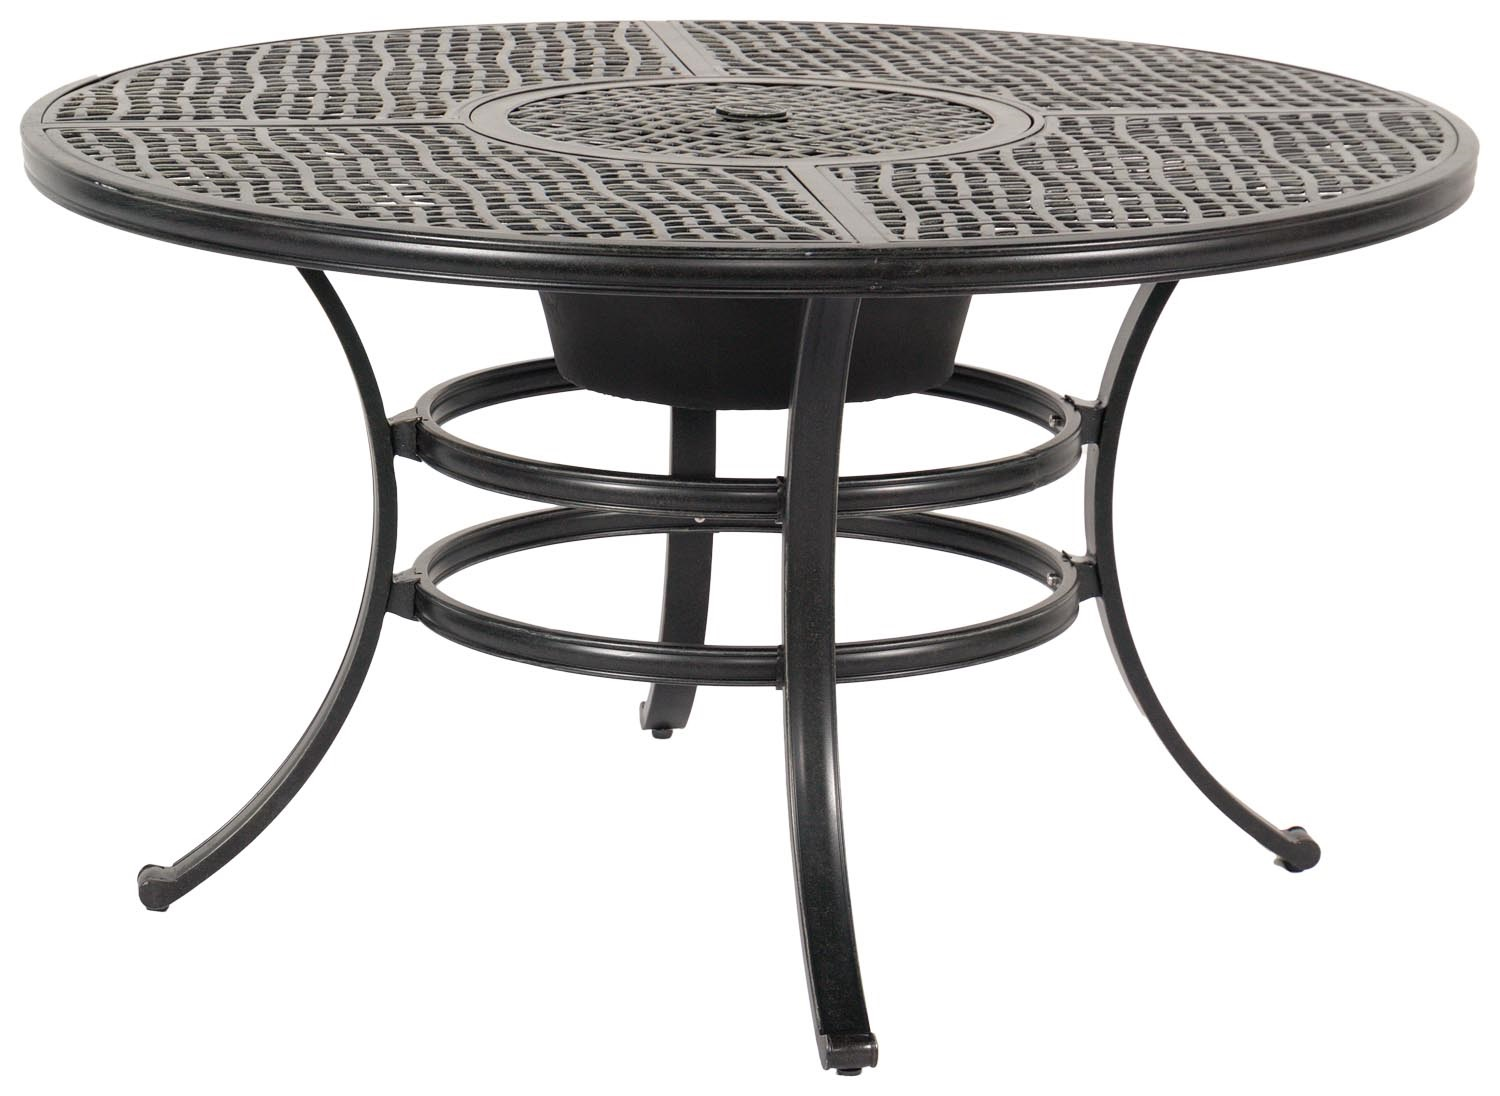 hartman jamie oliver round dining table de tropen. Black Bedroom Furniture Sets. Home Design Ideas